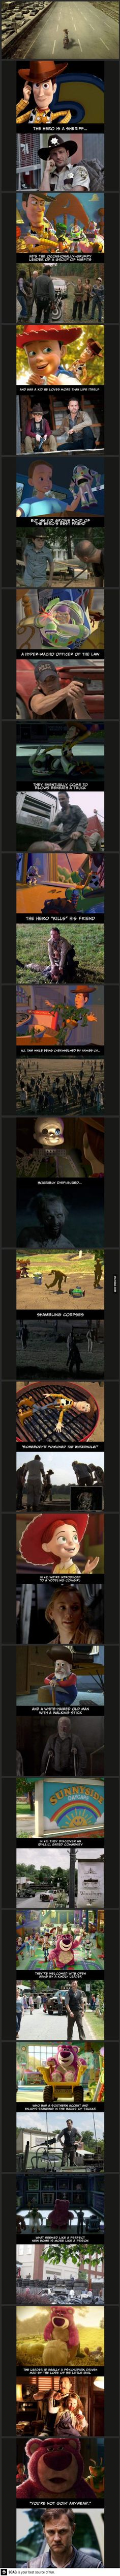 The Walking Dead and Toy Story comparison. -Blew my mind-